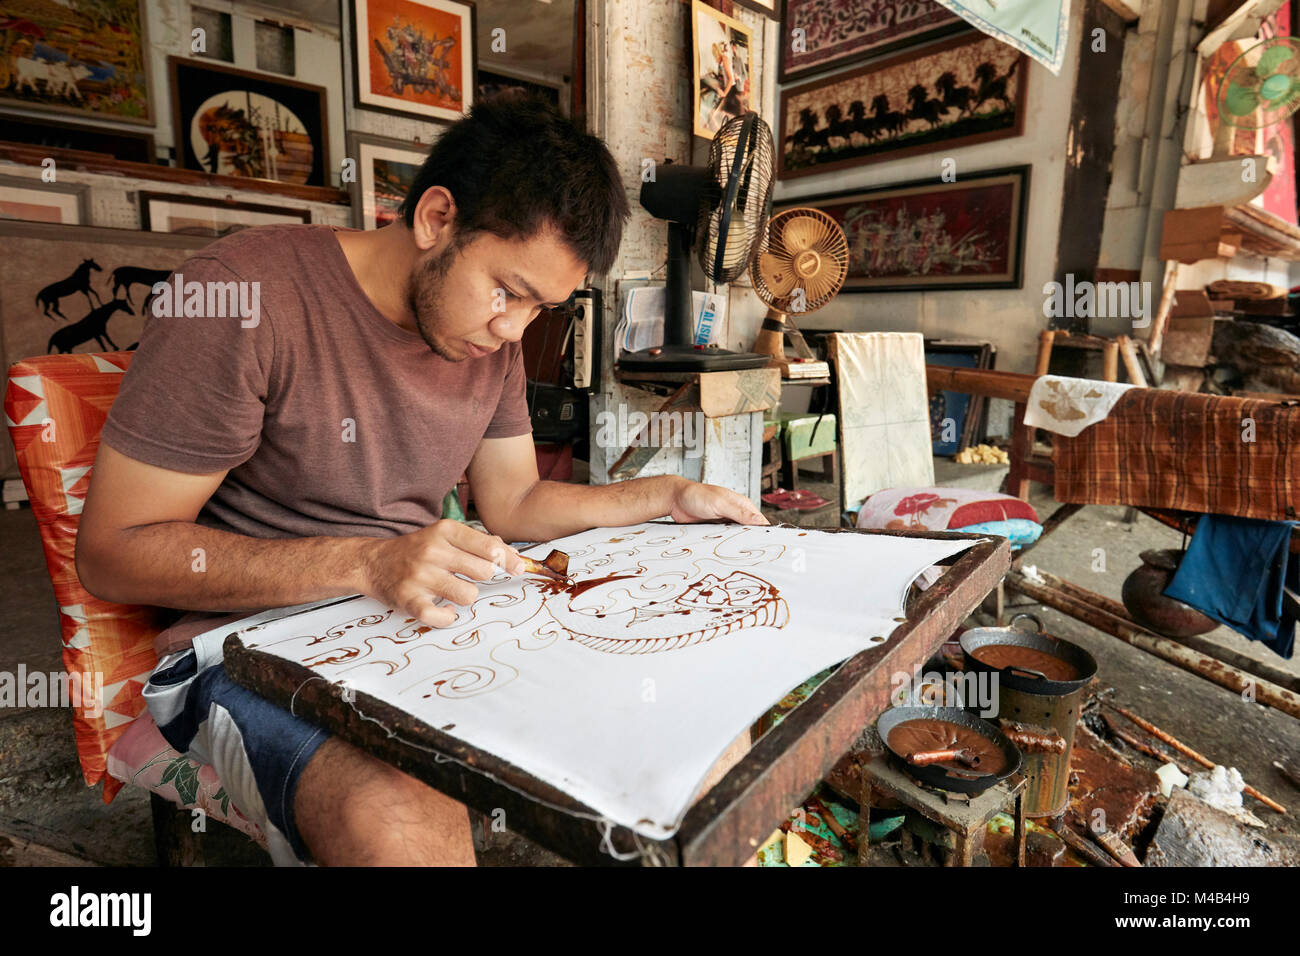 Artisan painting batik with a canting (spouted tool) in Batik Seno shop. Yogyakarta, Java, Indonesia. - Stock Image